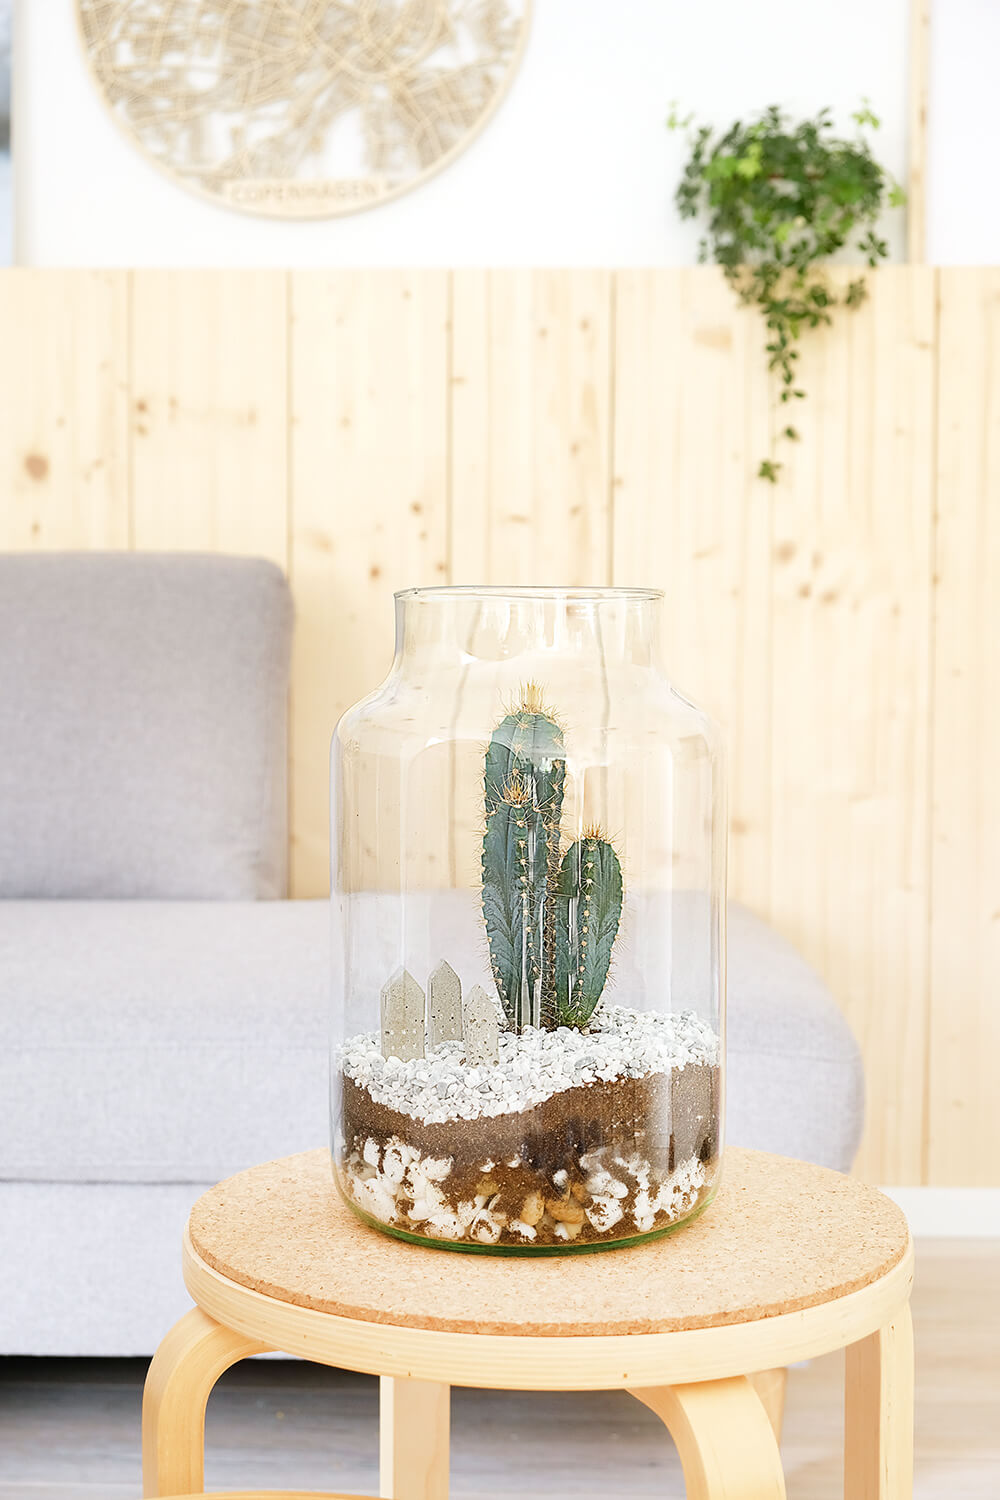 Diy Dehner Kakteen Terrarium Beton Deko Tisch Gingered Things Gingered Things